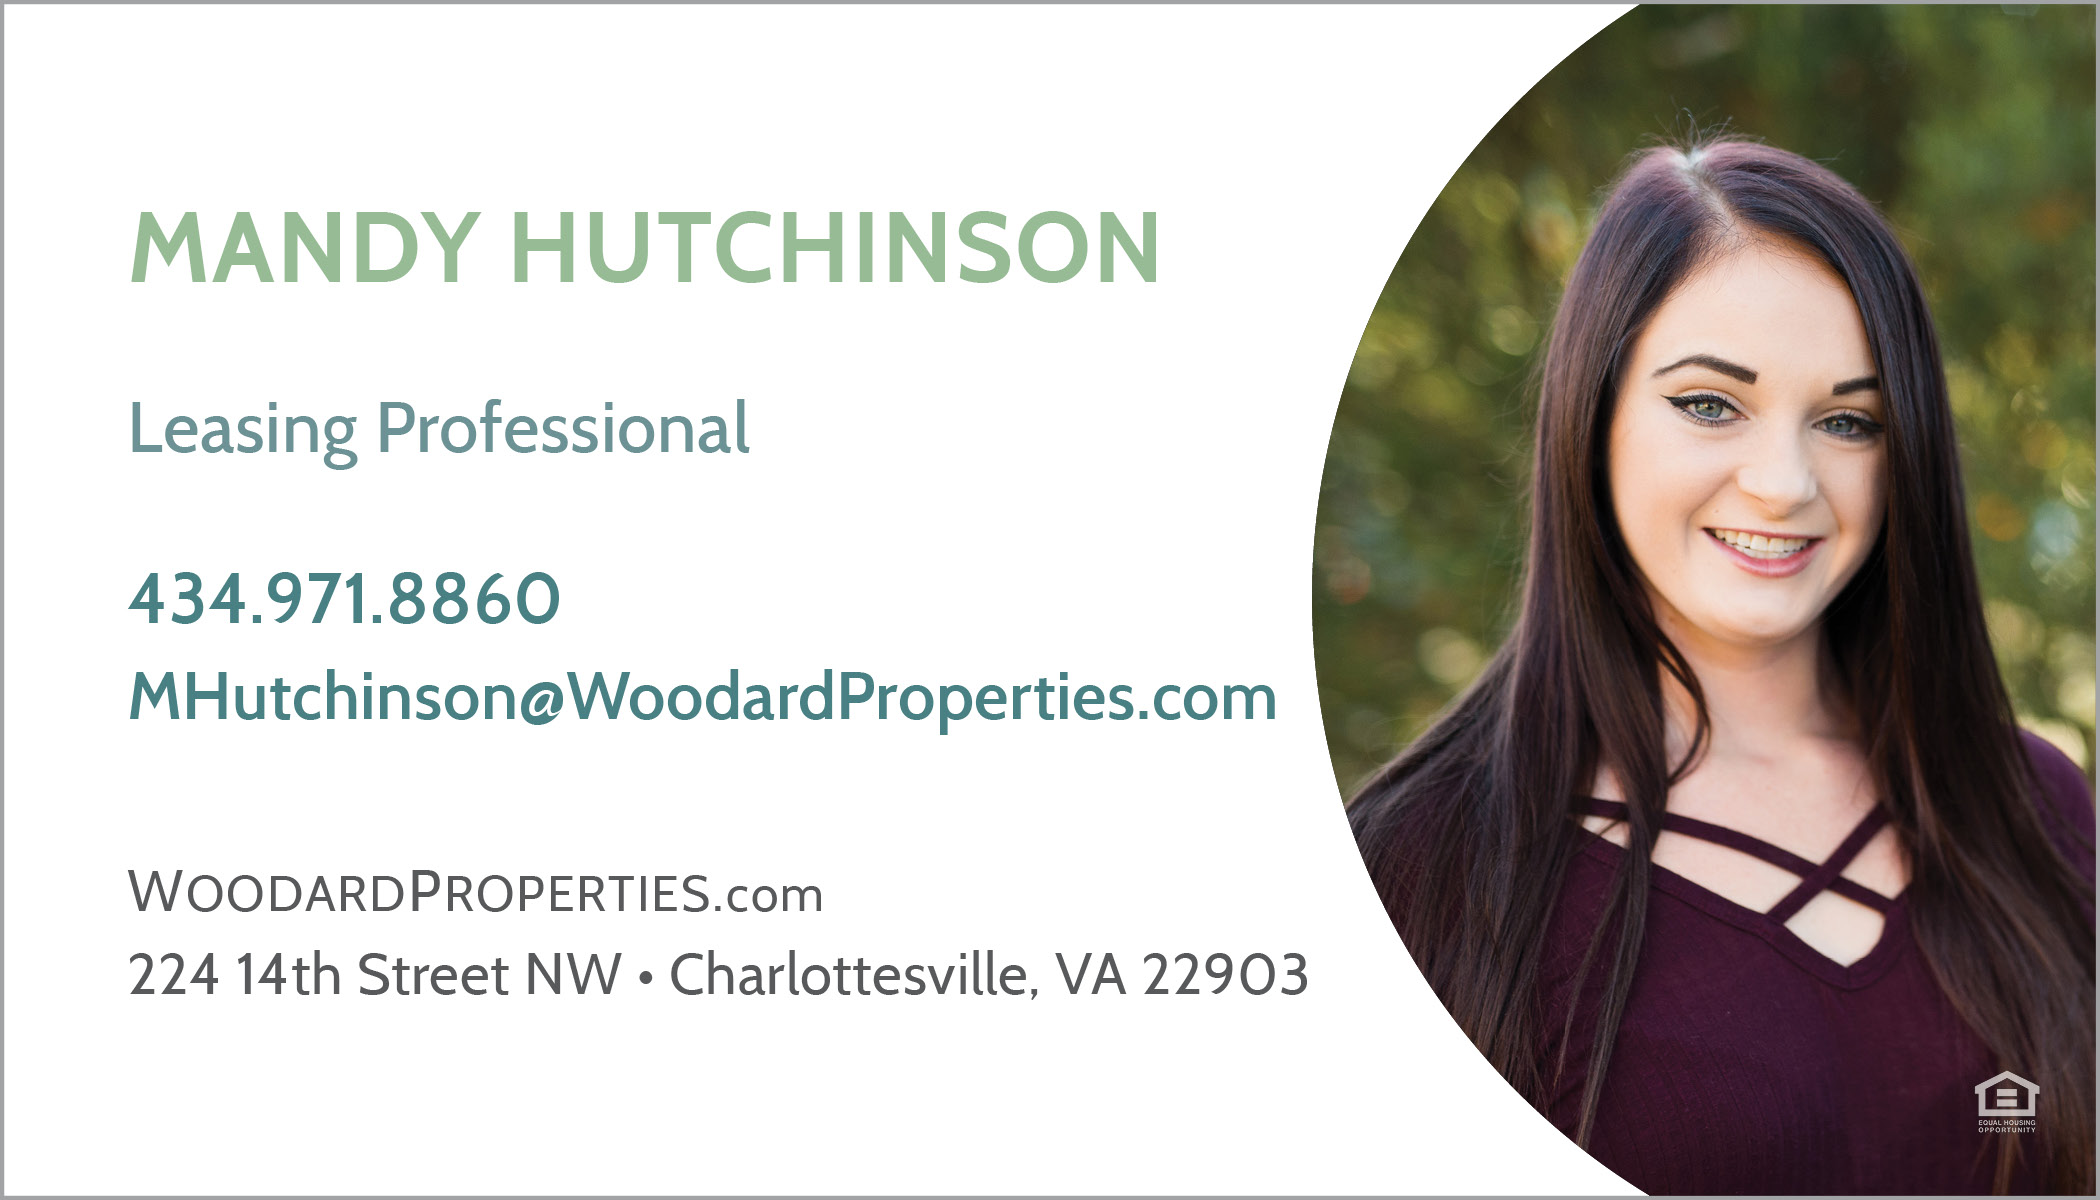 Z Mandy H Email Signature Woodard Properties